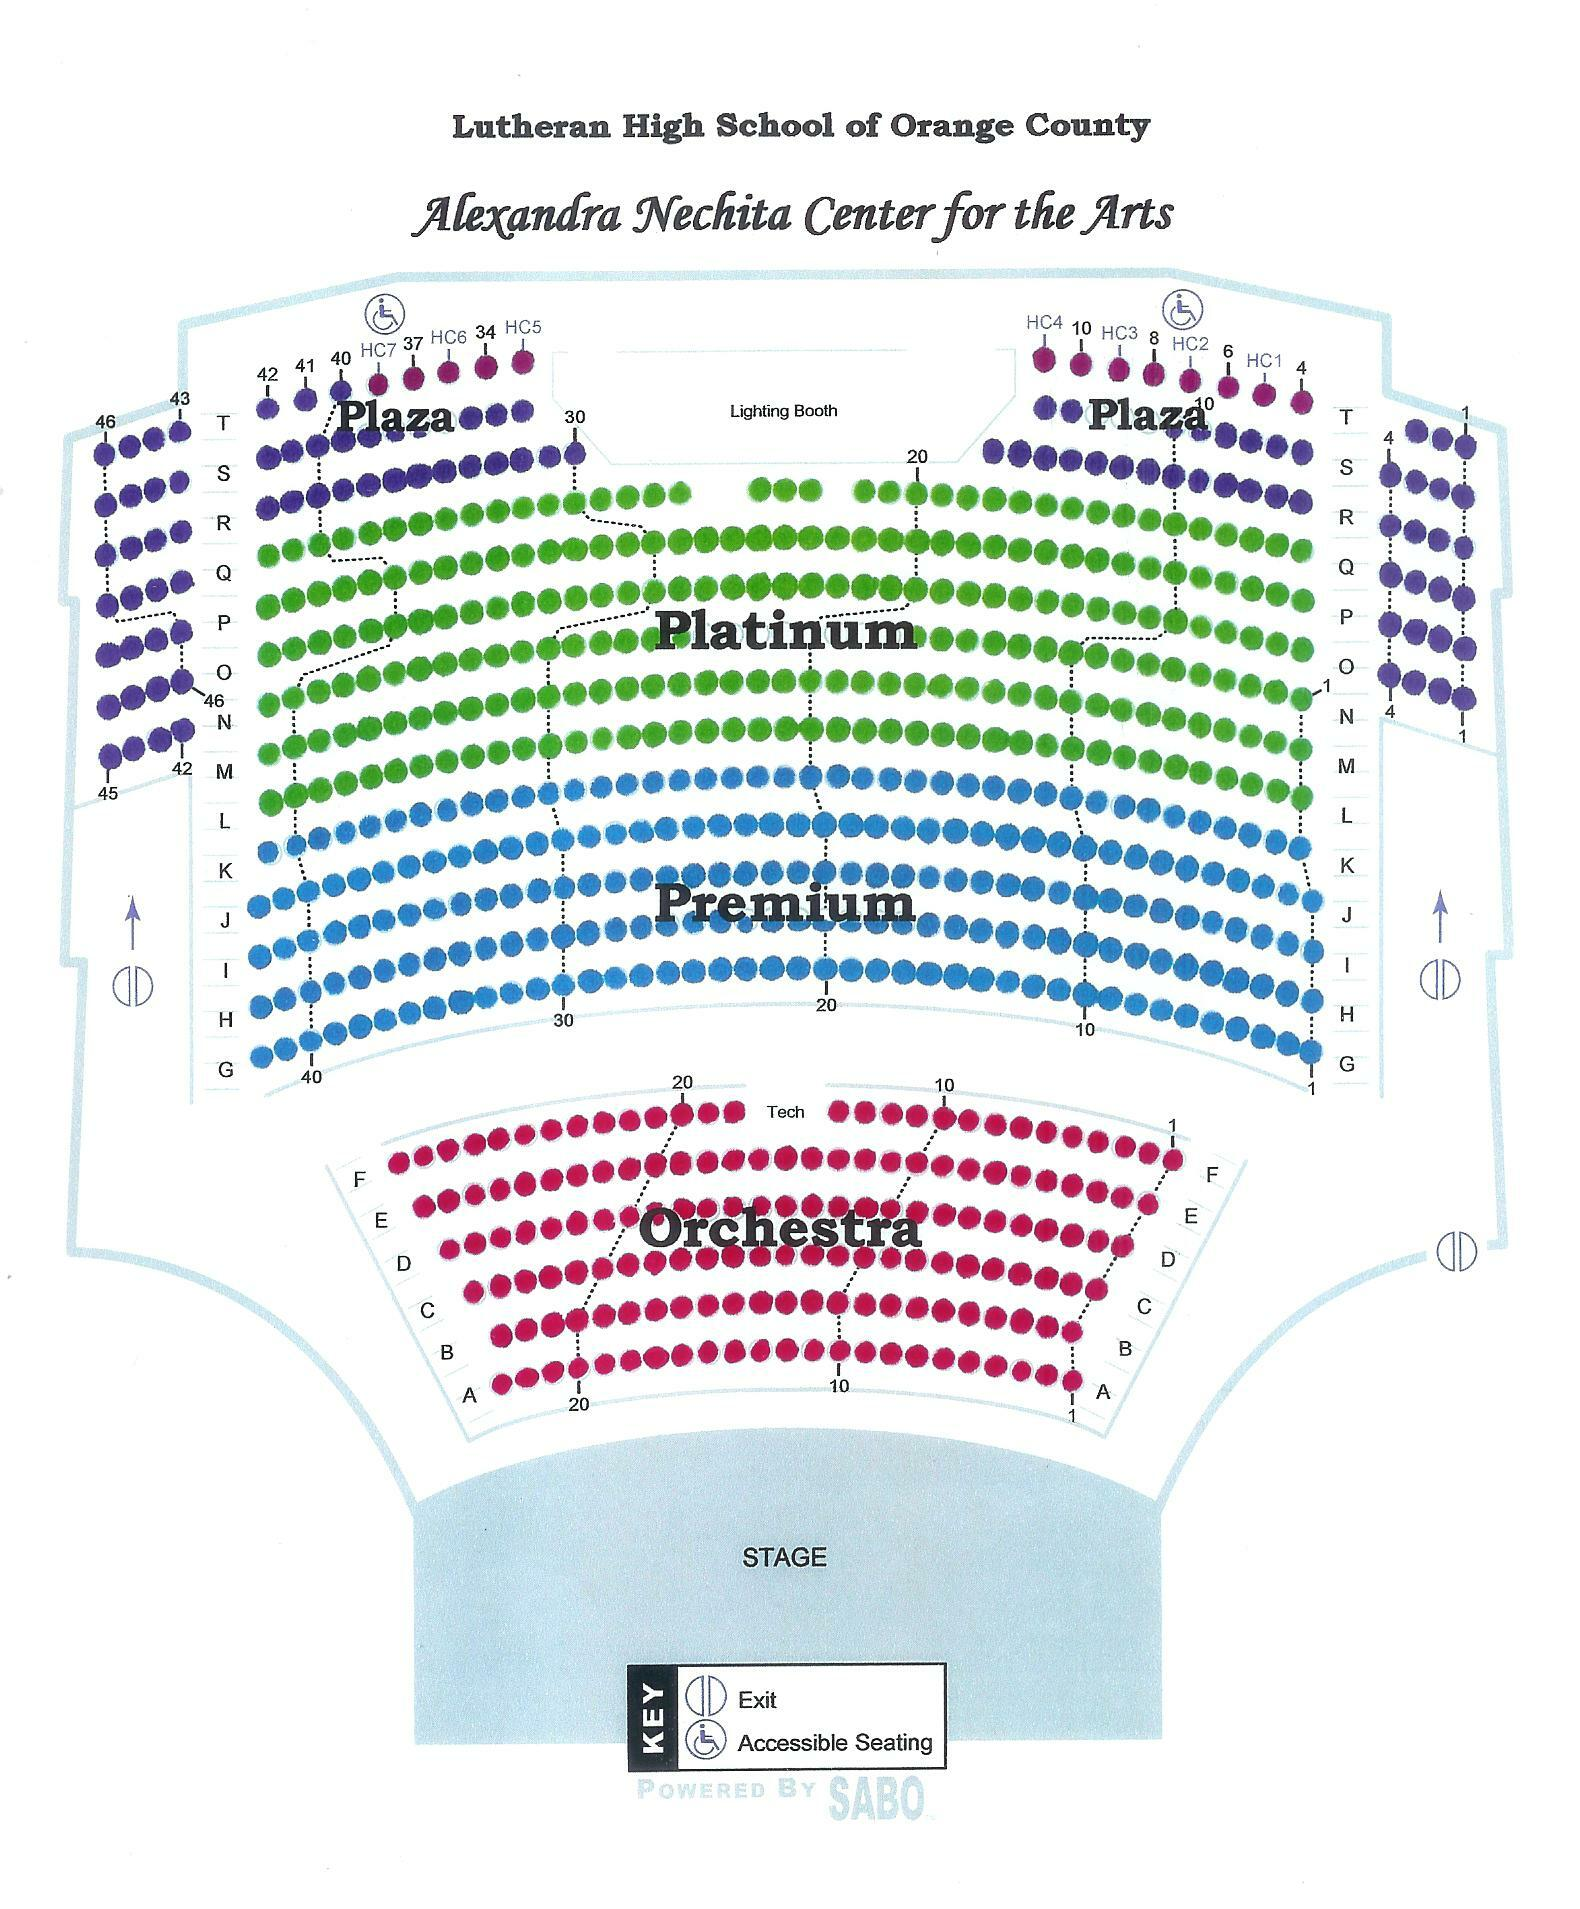 nechita seating chart Nechita Center Seating